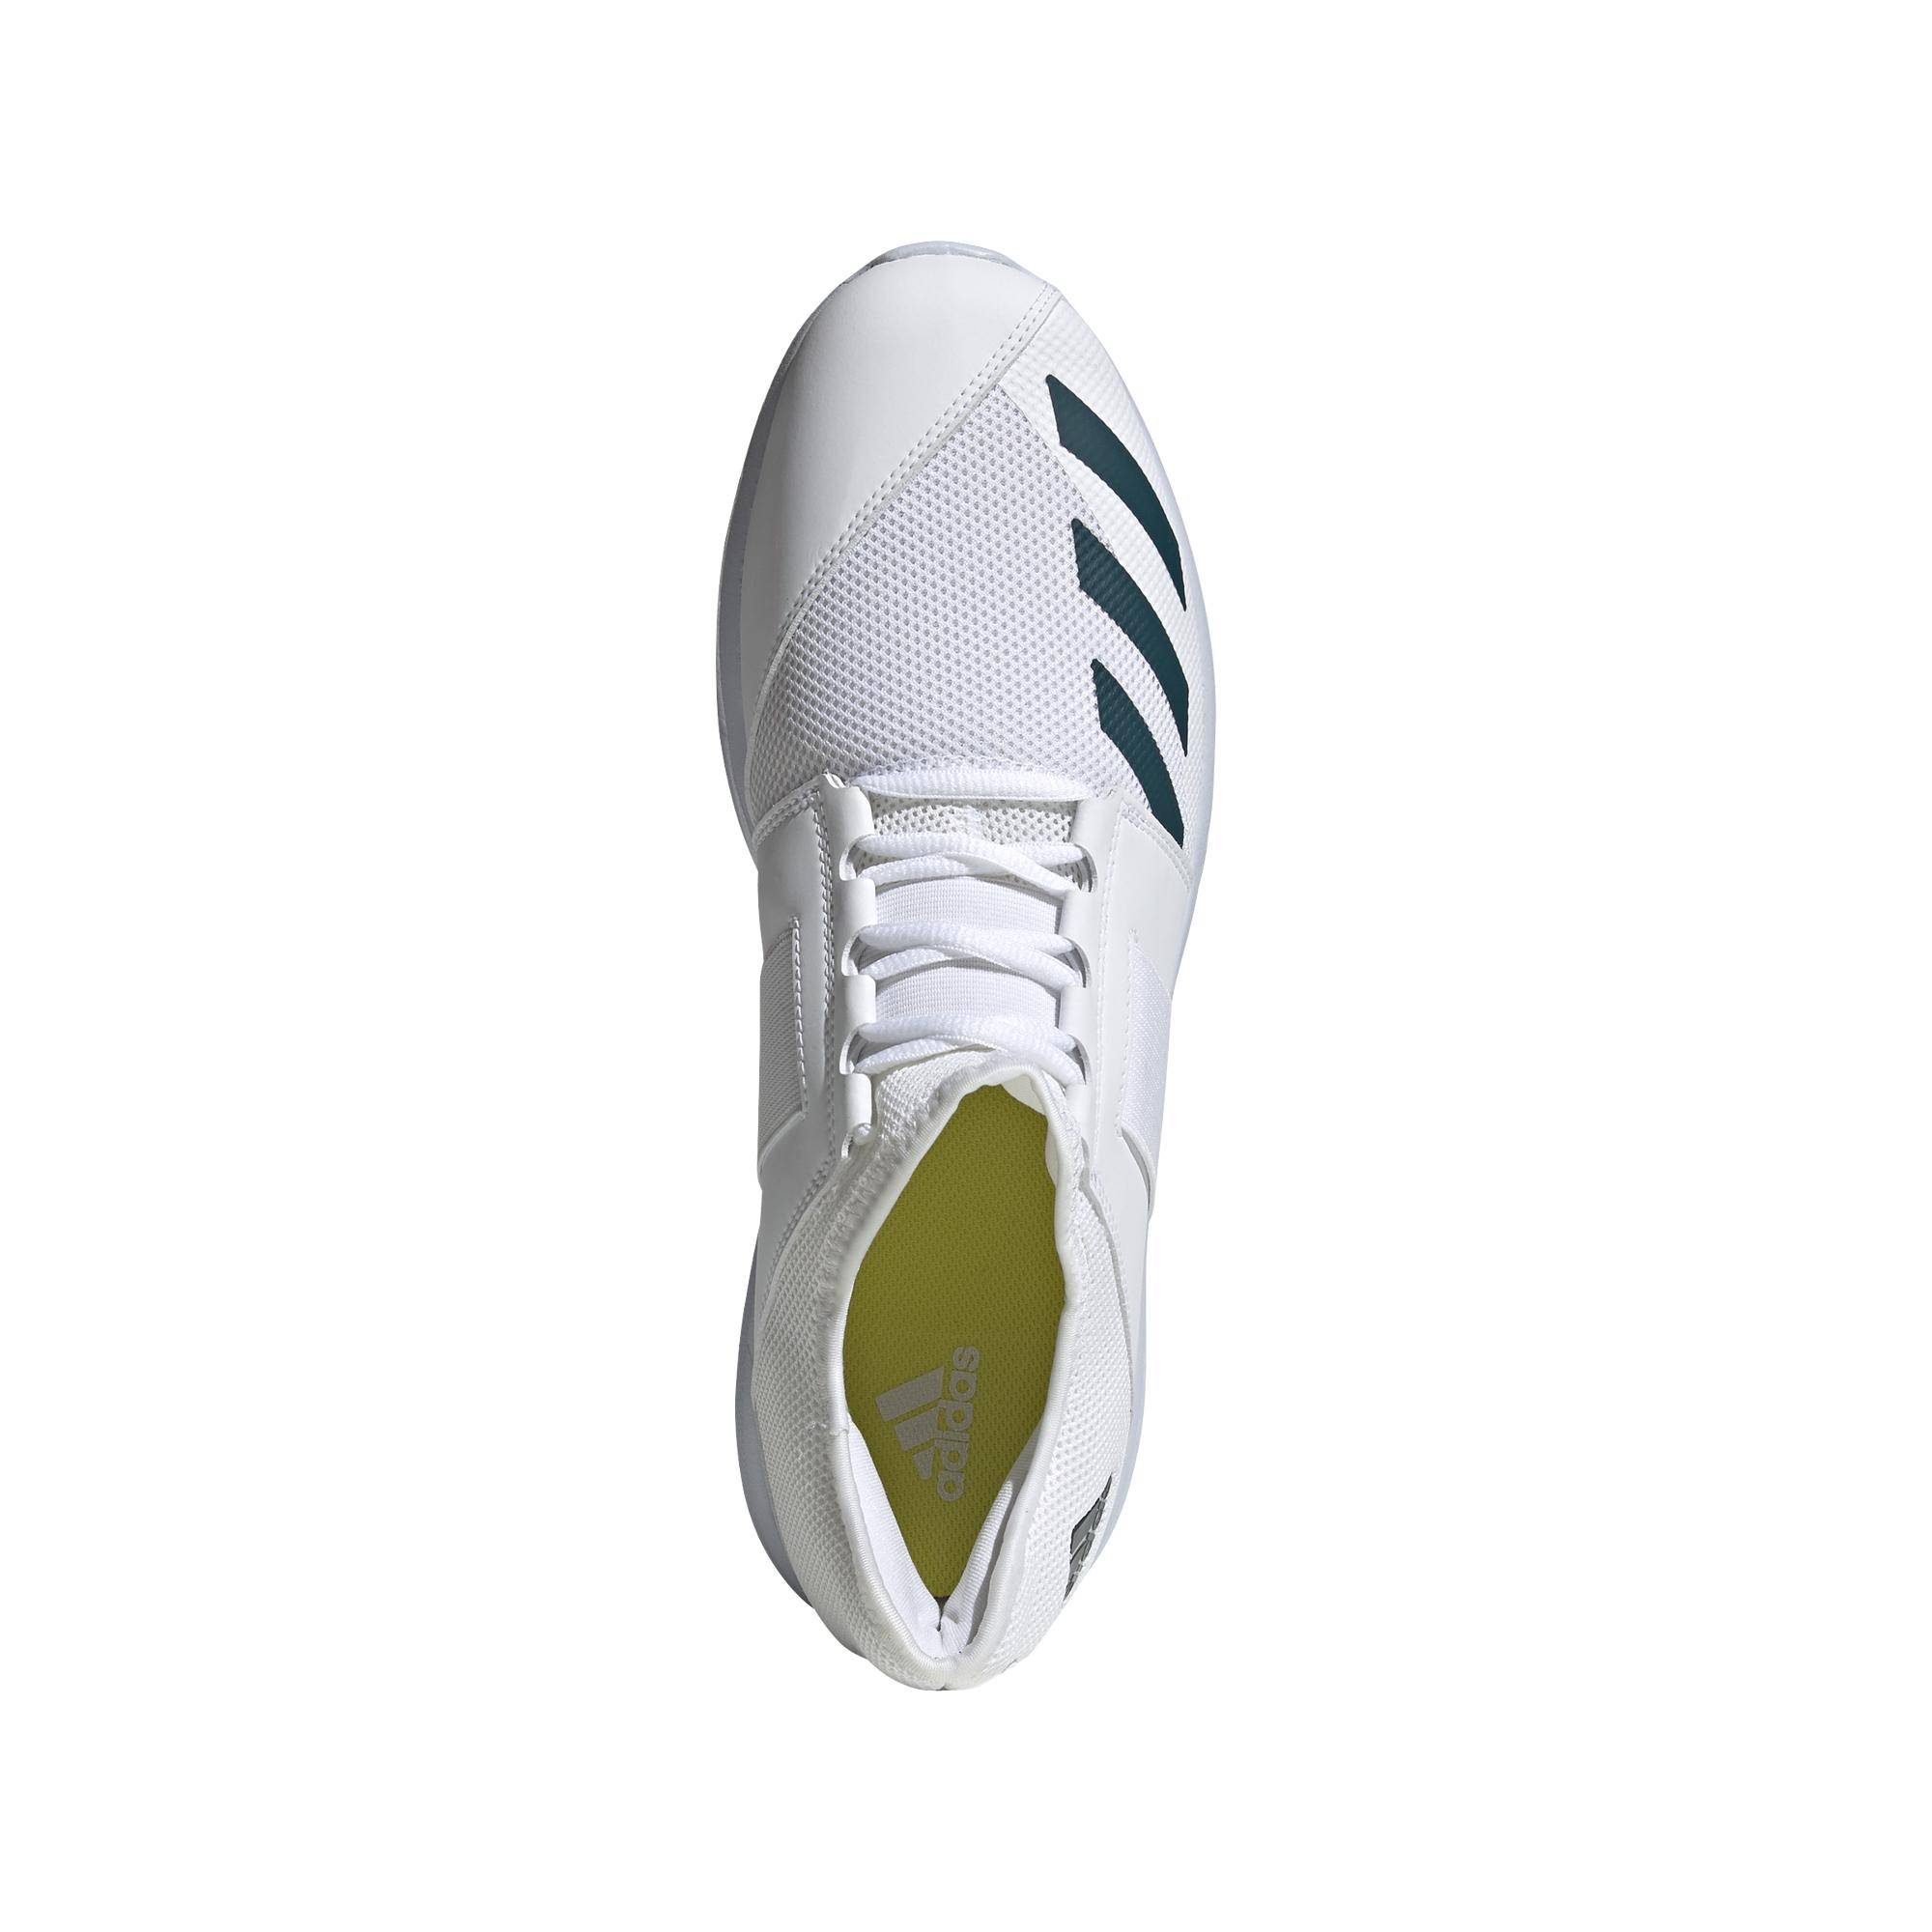 Adidas Howzat Spike 20 Cricket Shoes (2021) - Buy Now